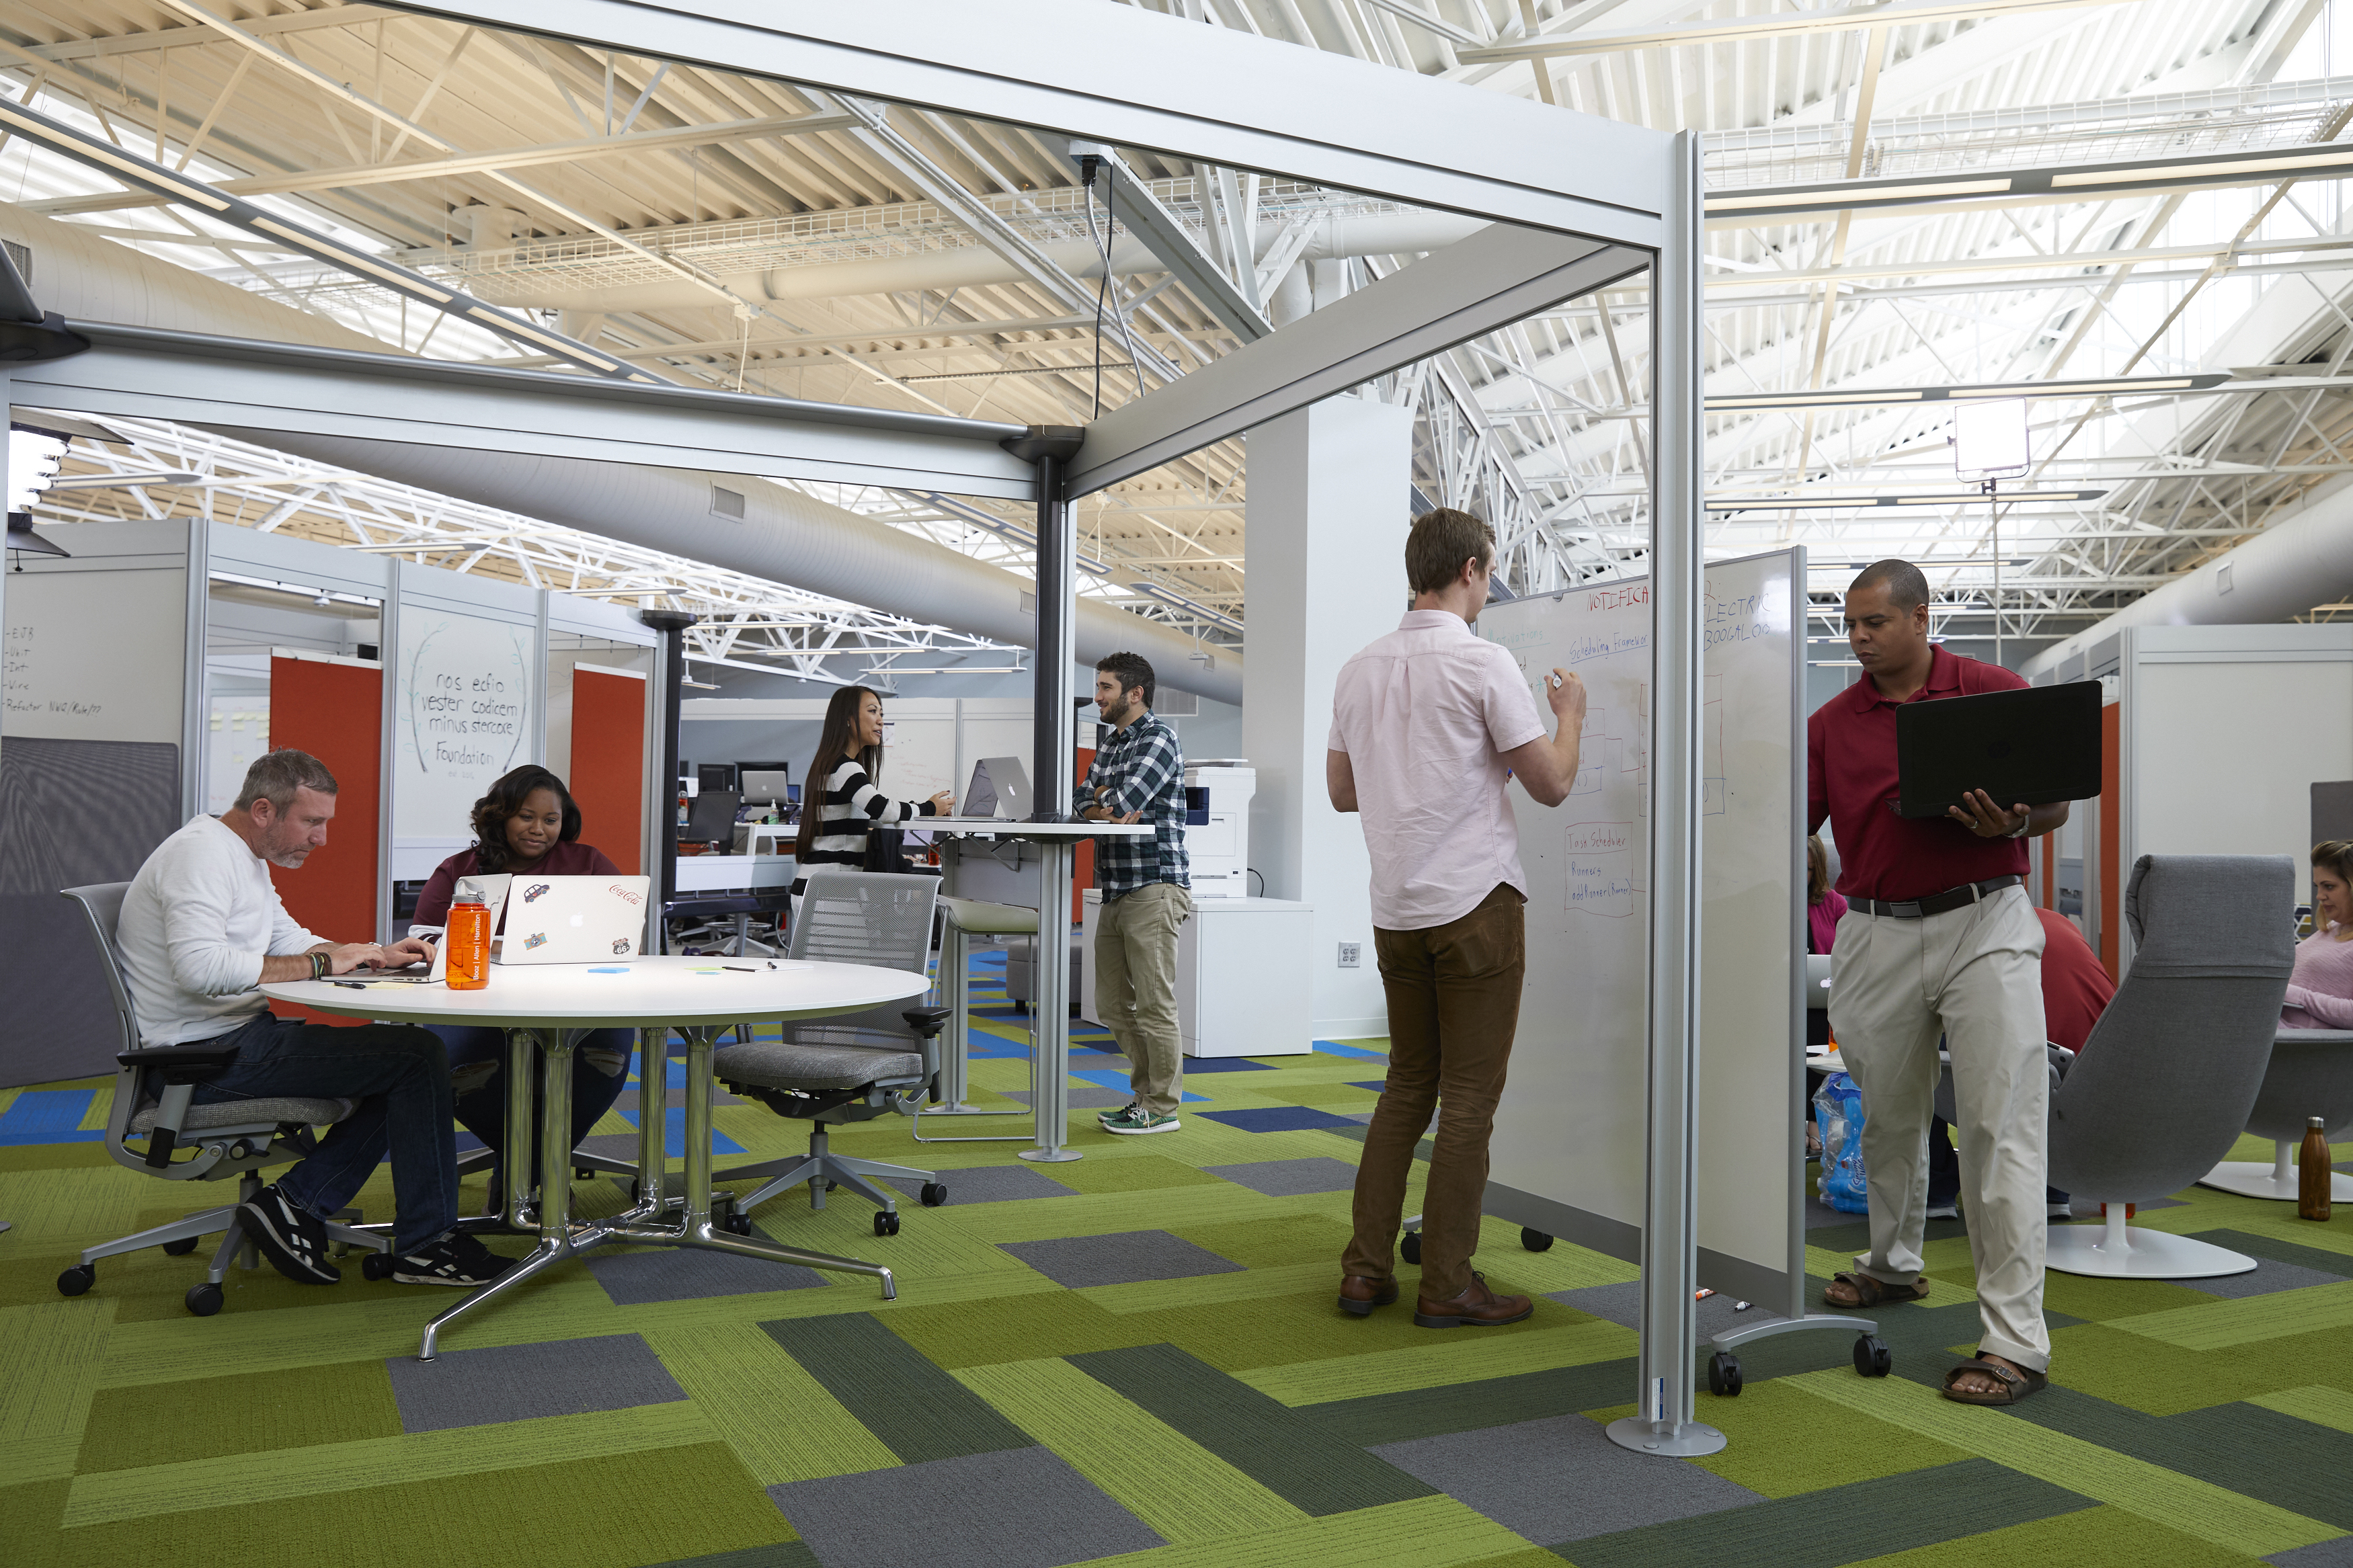 At its newly expanded Charleston Digital Hub at Clements Ferry Road, the firm expects to expand from 310+ to 400+ employees by calendar year's end to capitalize on the growing demand for its digital services. (Credit: Booz Allen)